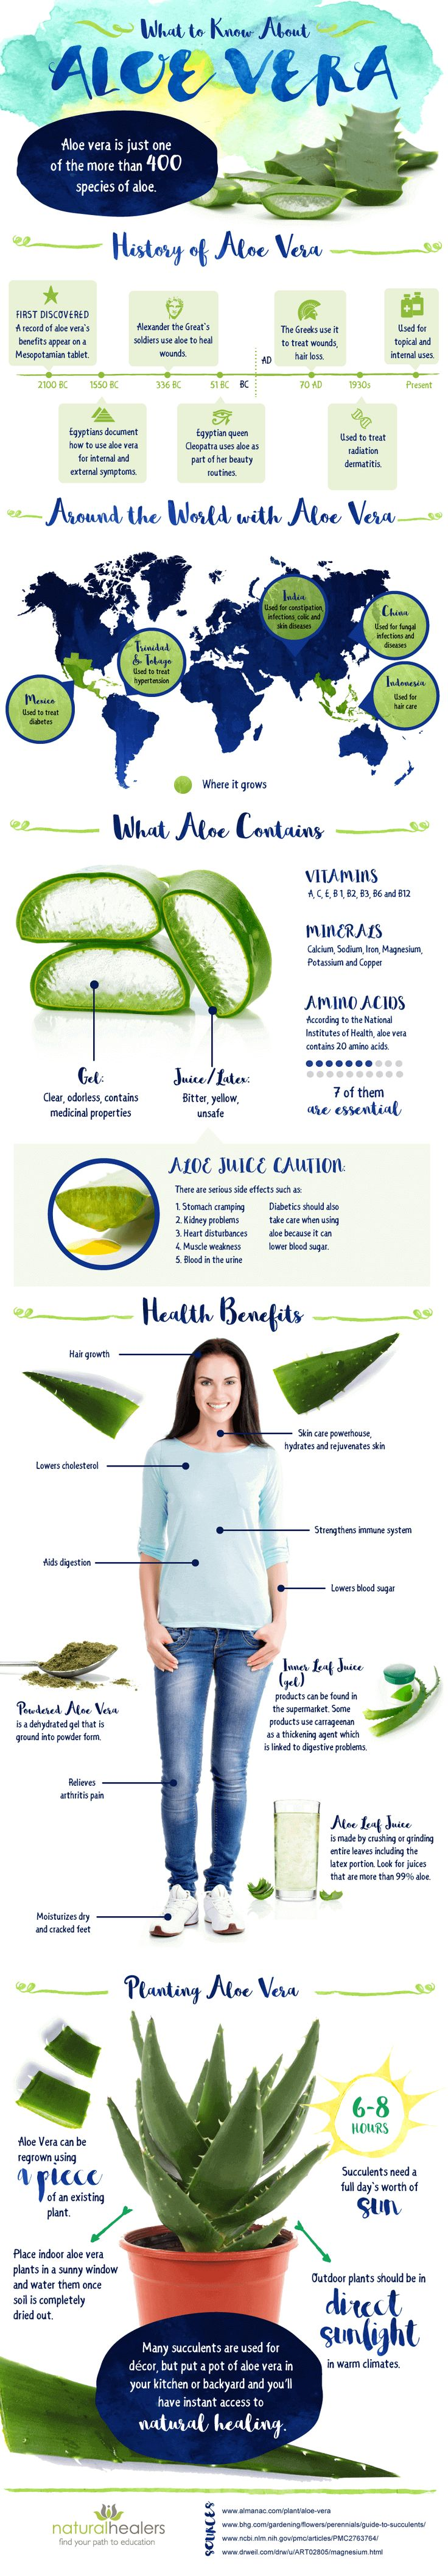 There are plenty of ways that you can use aloe vera; it all depends on what kind of problem you have. The best would be planting an aloe vera plant in your house and using the freshly extracted gel for your smoothie, skin rashes, or what so ever you may be suffering from.